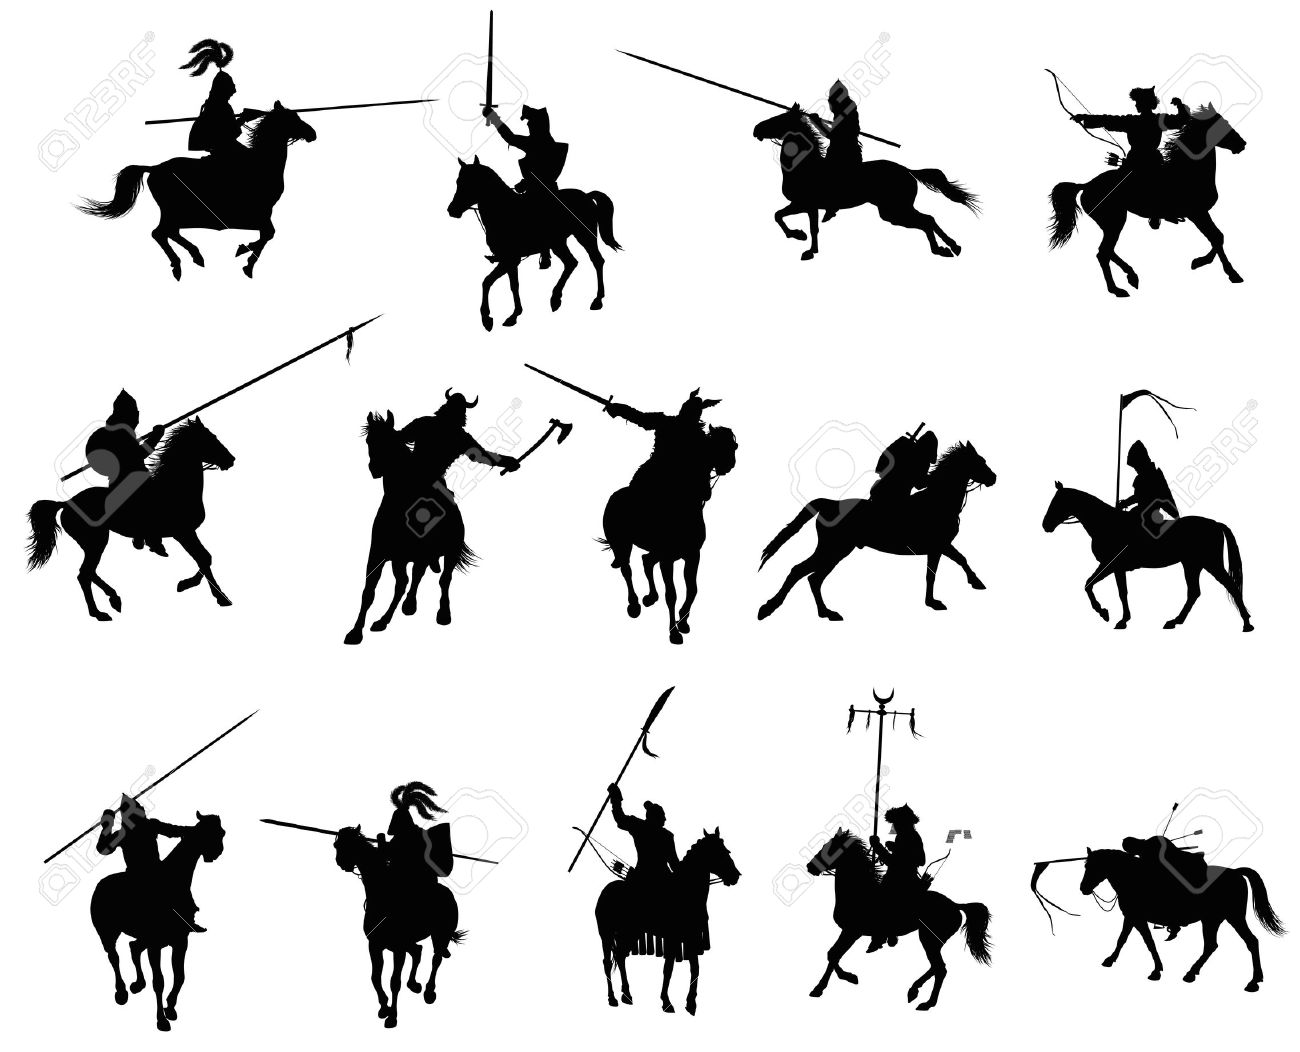 Knights and medieval warriors on horseback detailed silhouettes set  Vector Stock Vector - 14634419